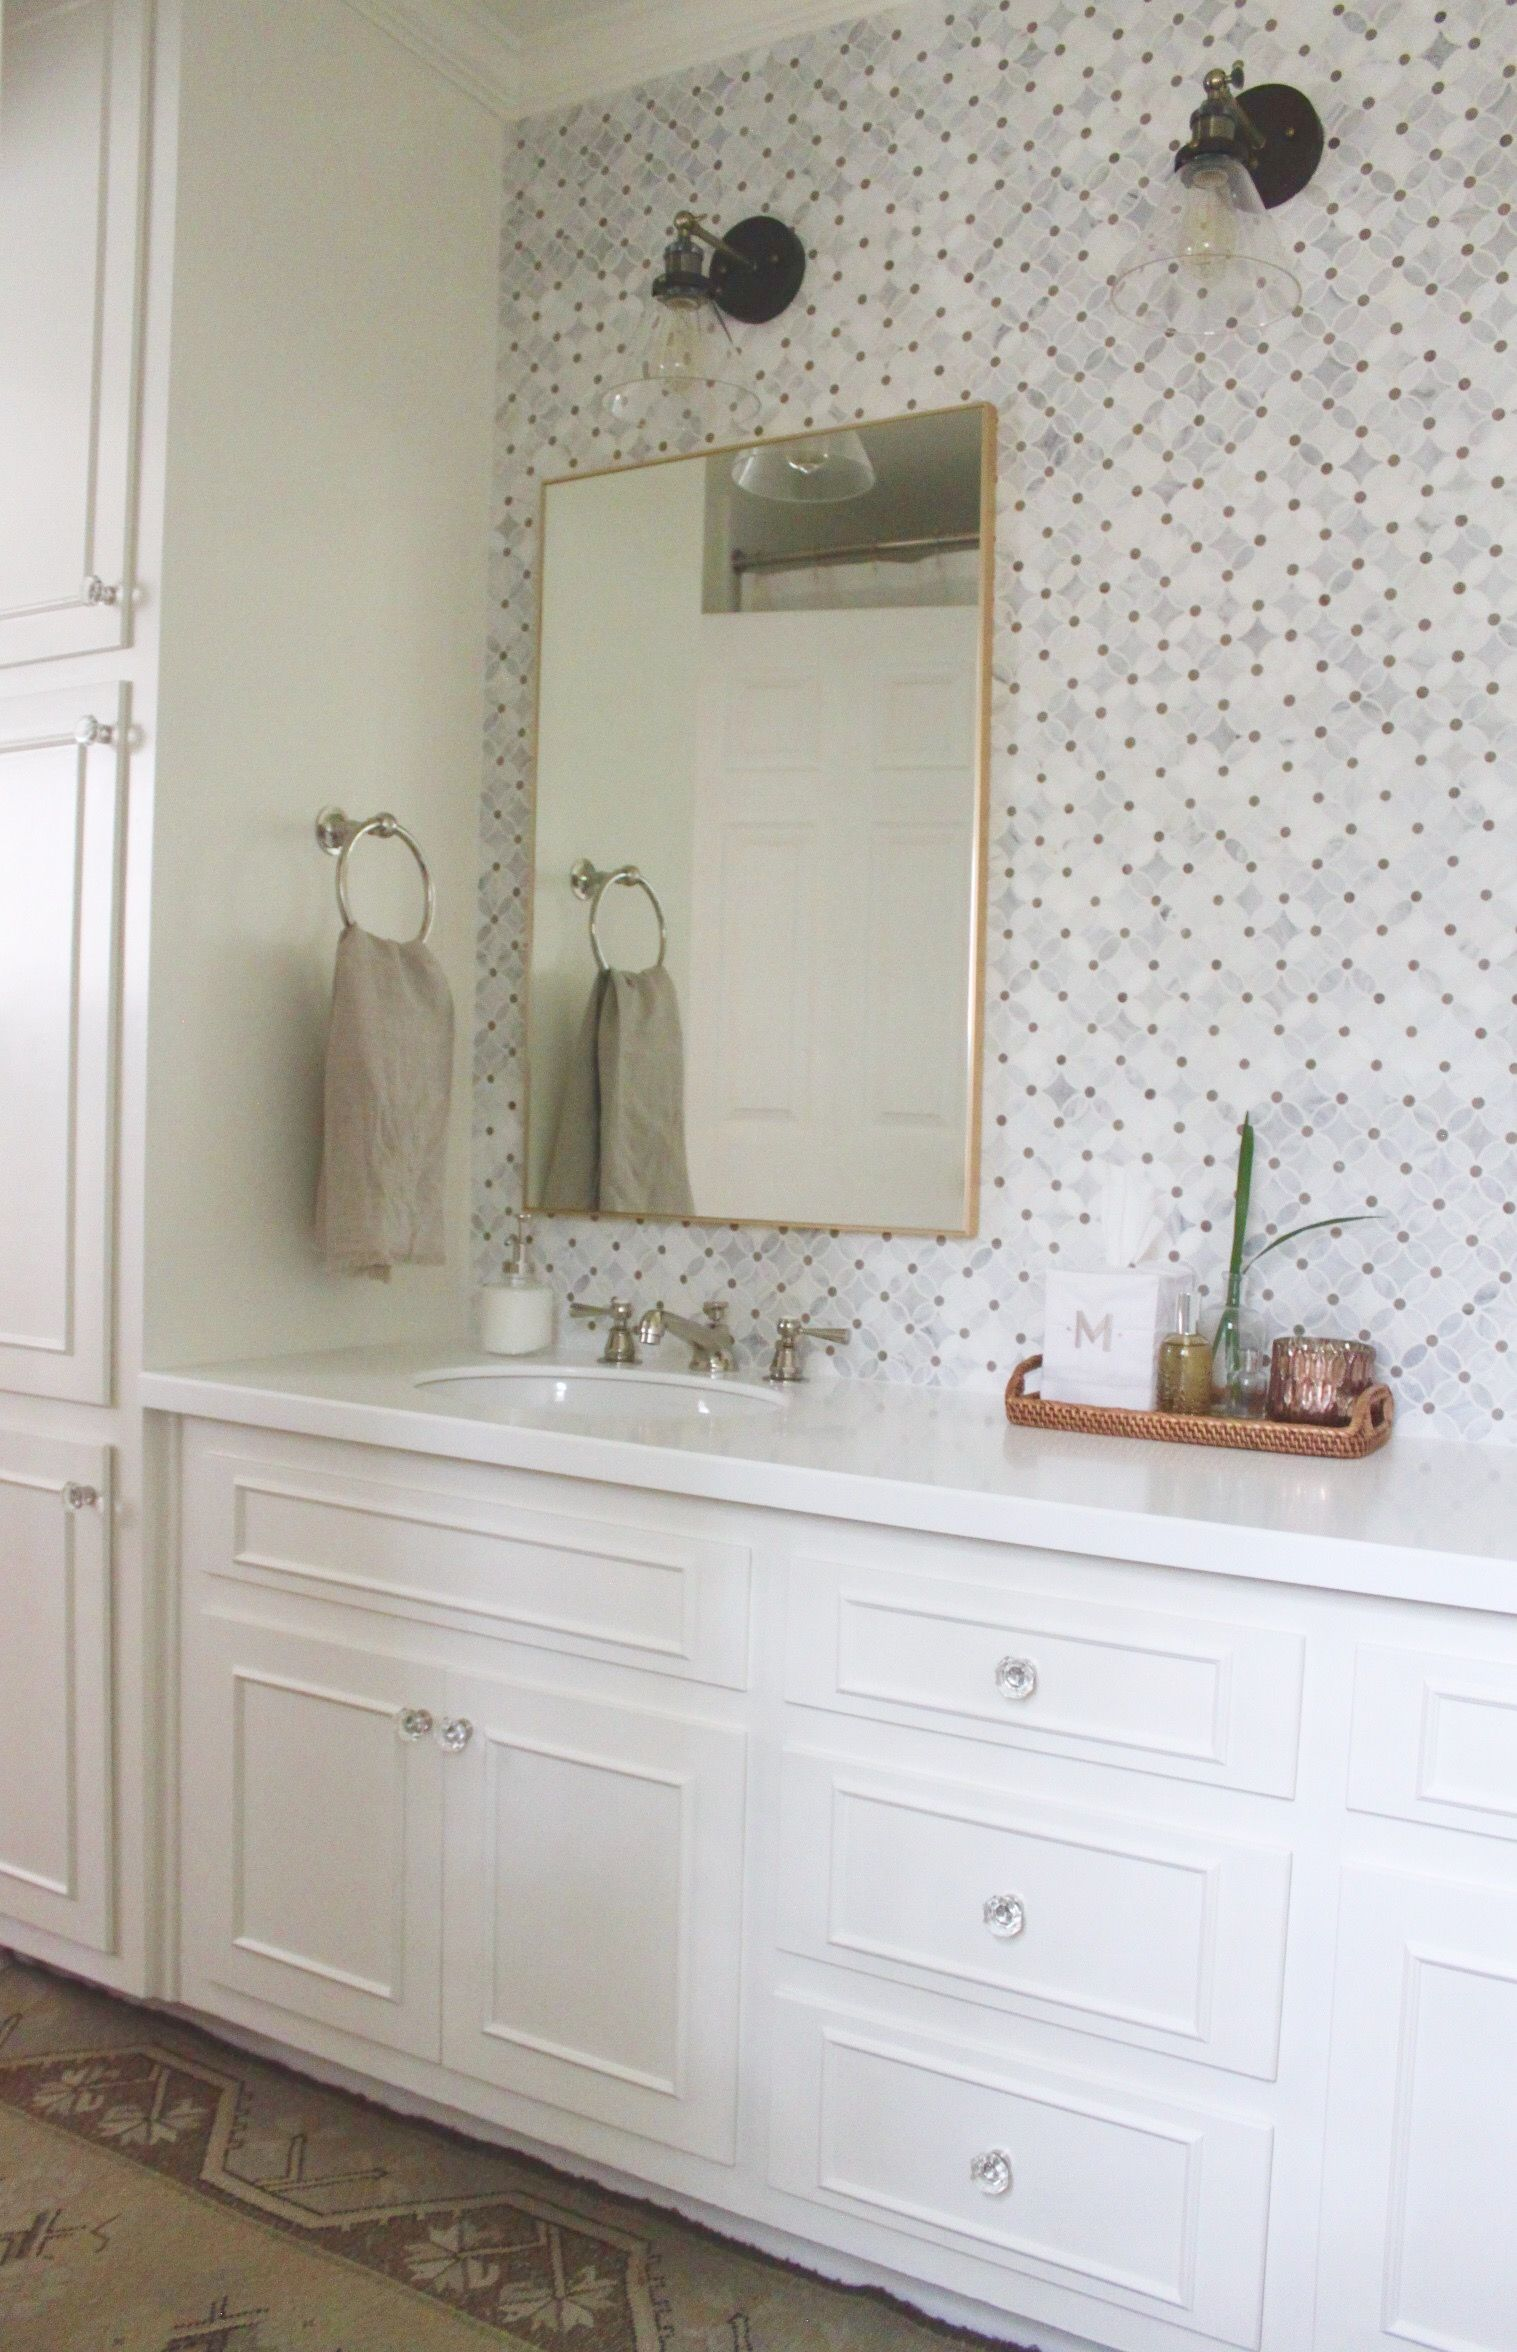 Traditional white Jack and Jill bathroom renovation remodel decor ...